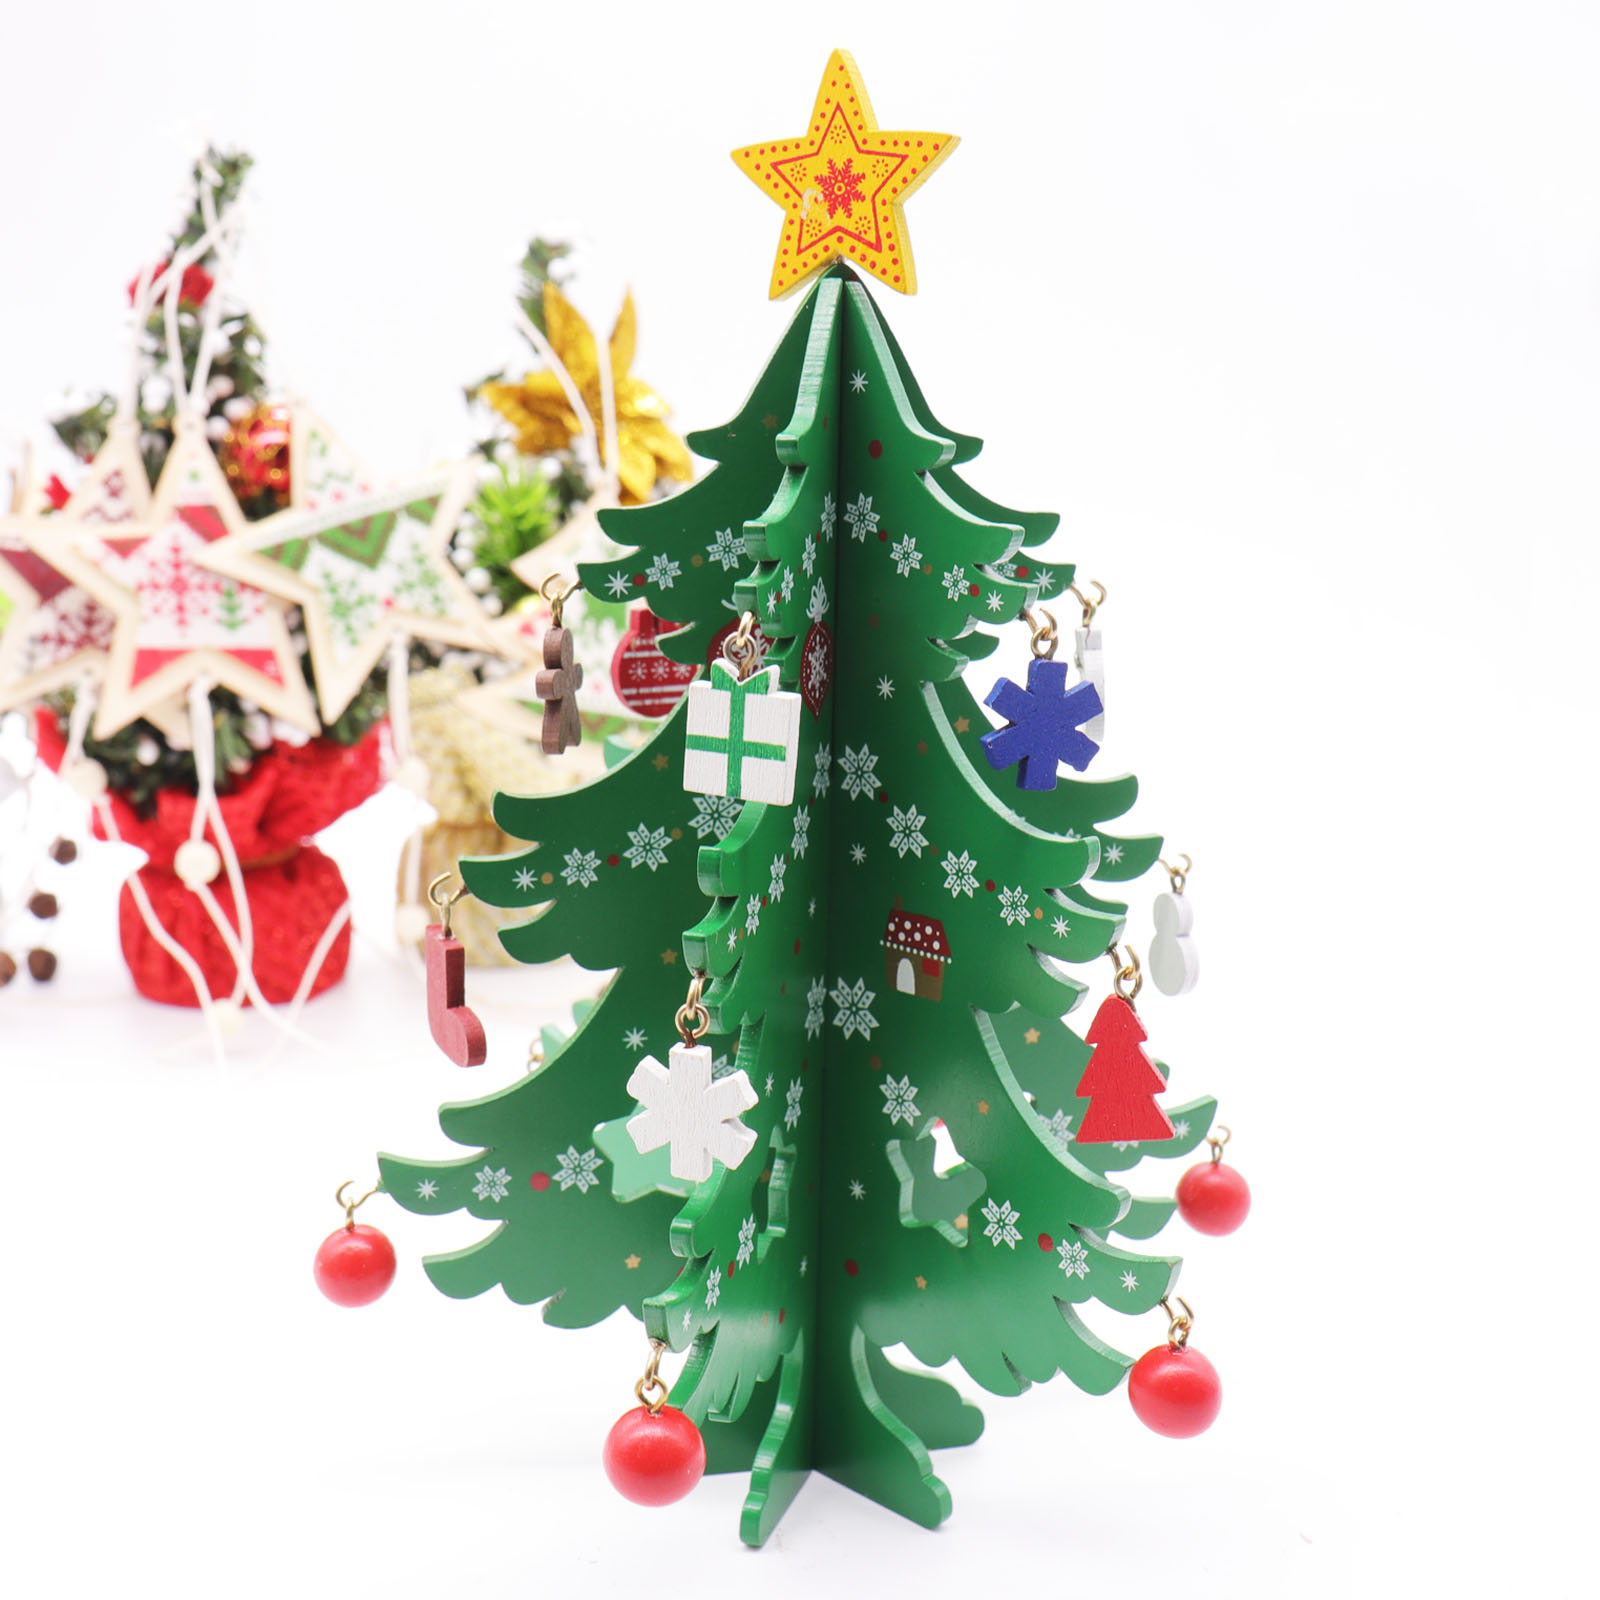 Us 6 77 30 Off 3d Diy Wood Christmas Tree With Ornament Pendant Table Desk Decoration For Children Gift Christmas New Year Party Supply In Trees